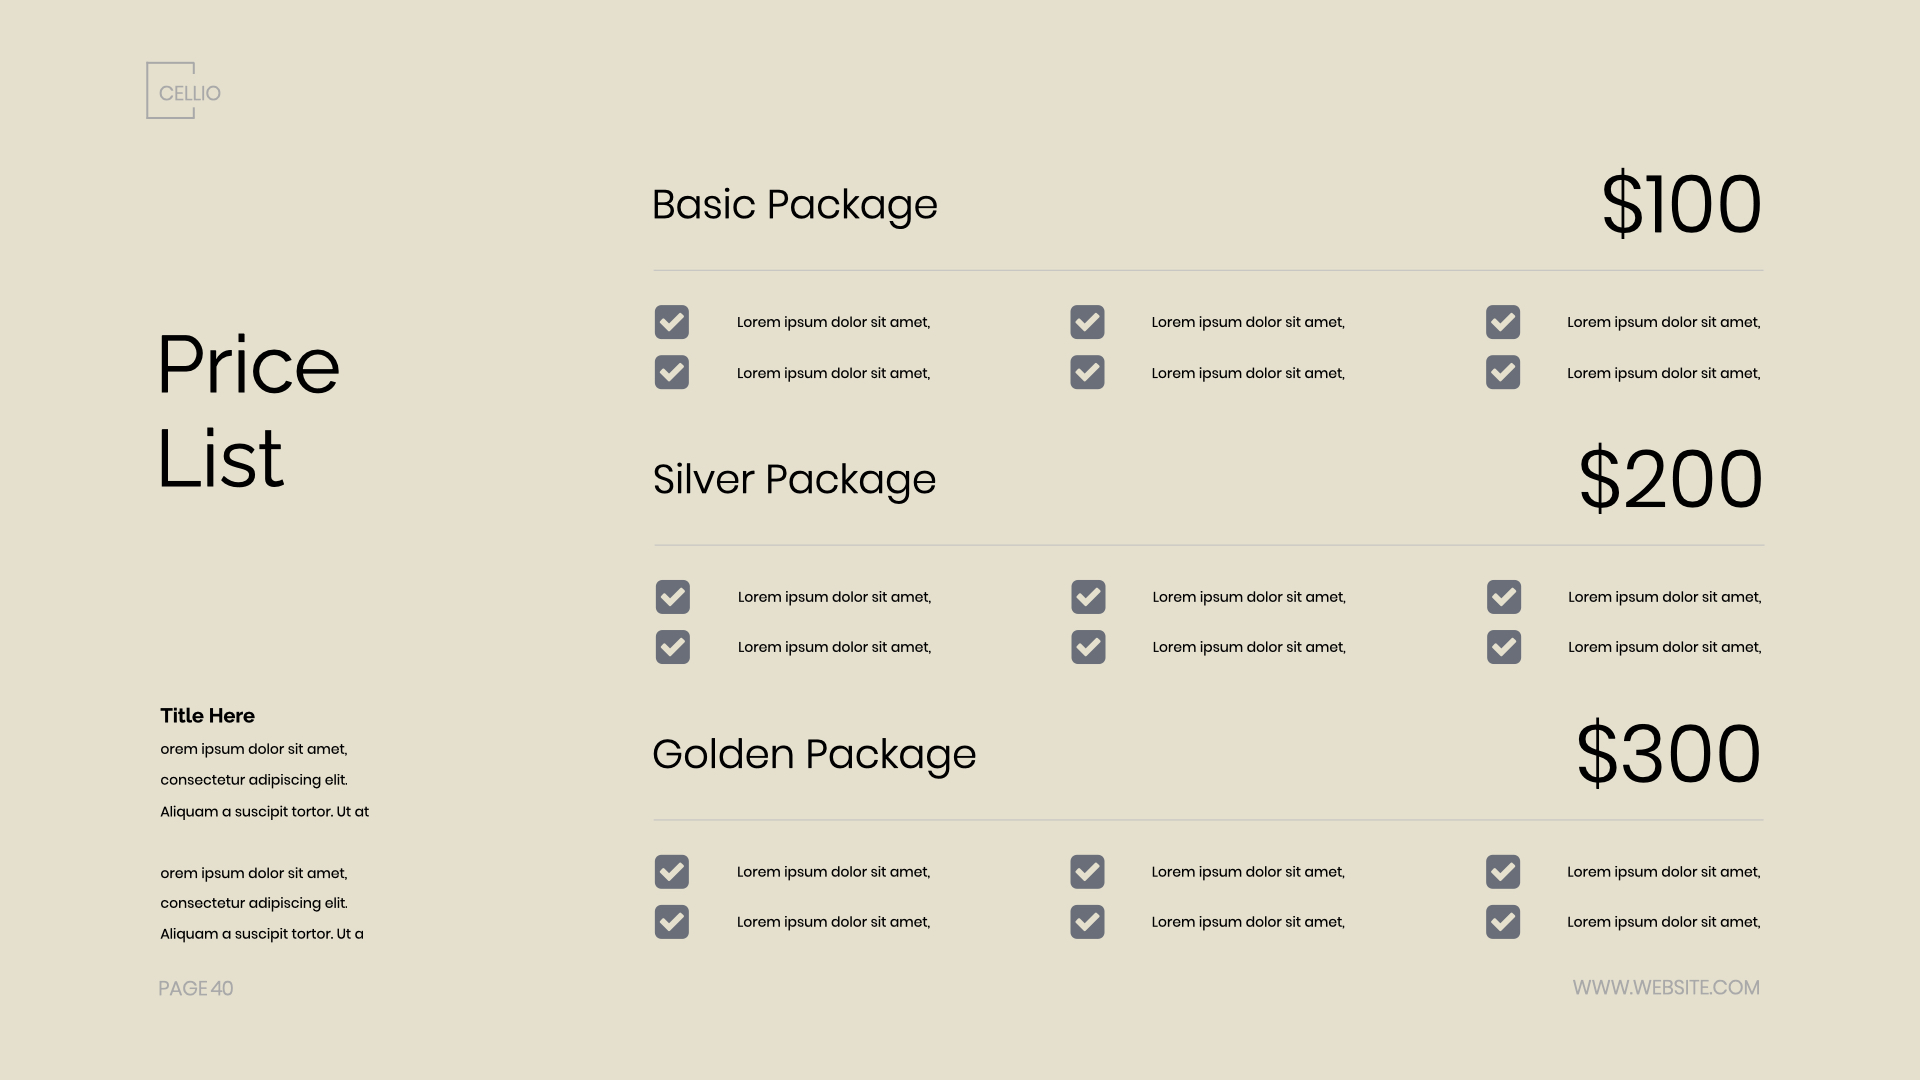 A simple and clear price list will make your service more accessible.